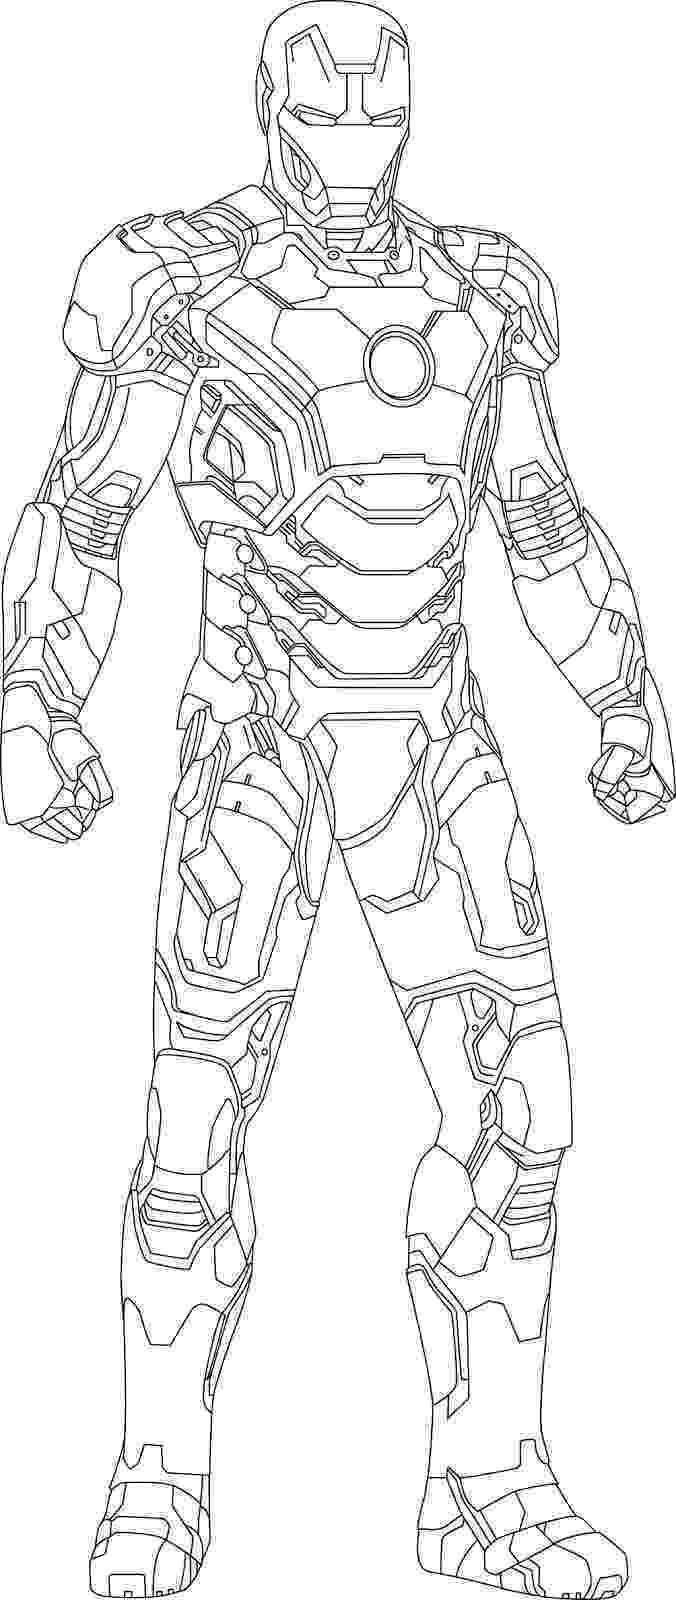 coloring pages avengers coloring pages for kids free images iron man avengers coloring avengers pages